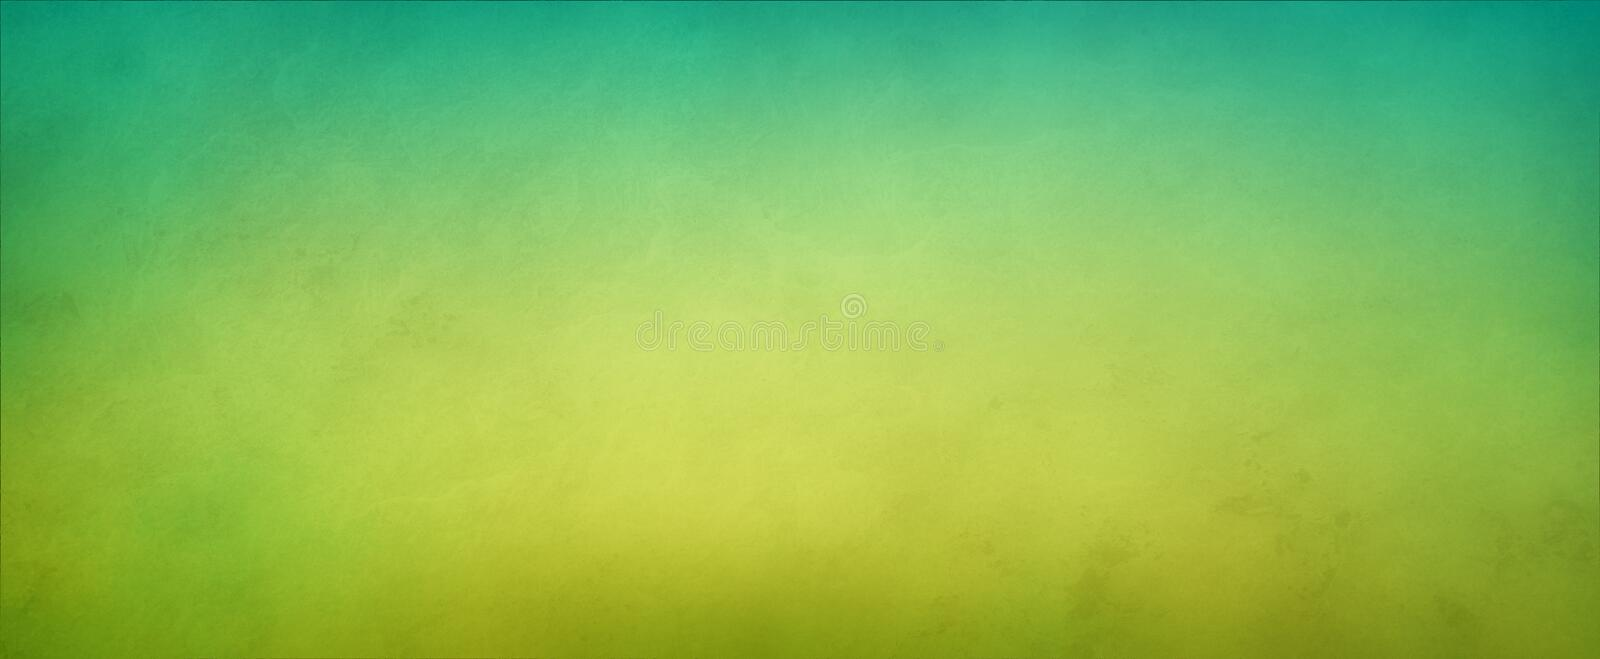 Abstract yellow green background with soft bright center glowing with light colors and blue green border royalty free stock image